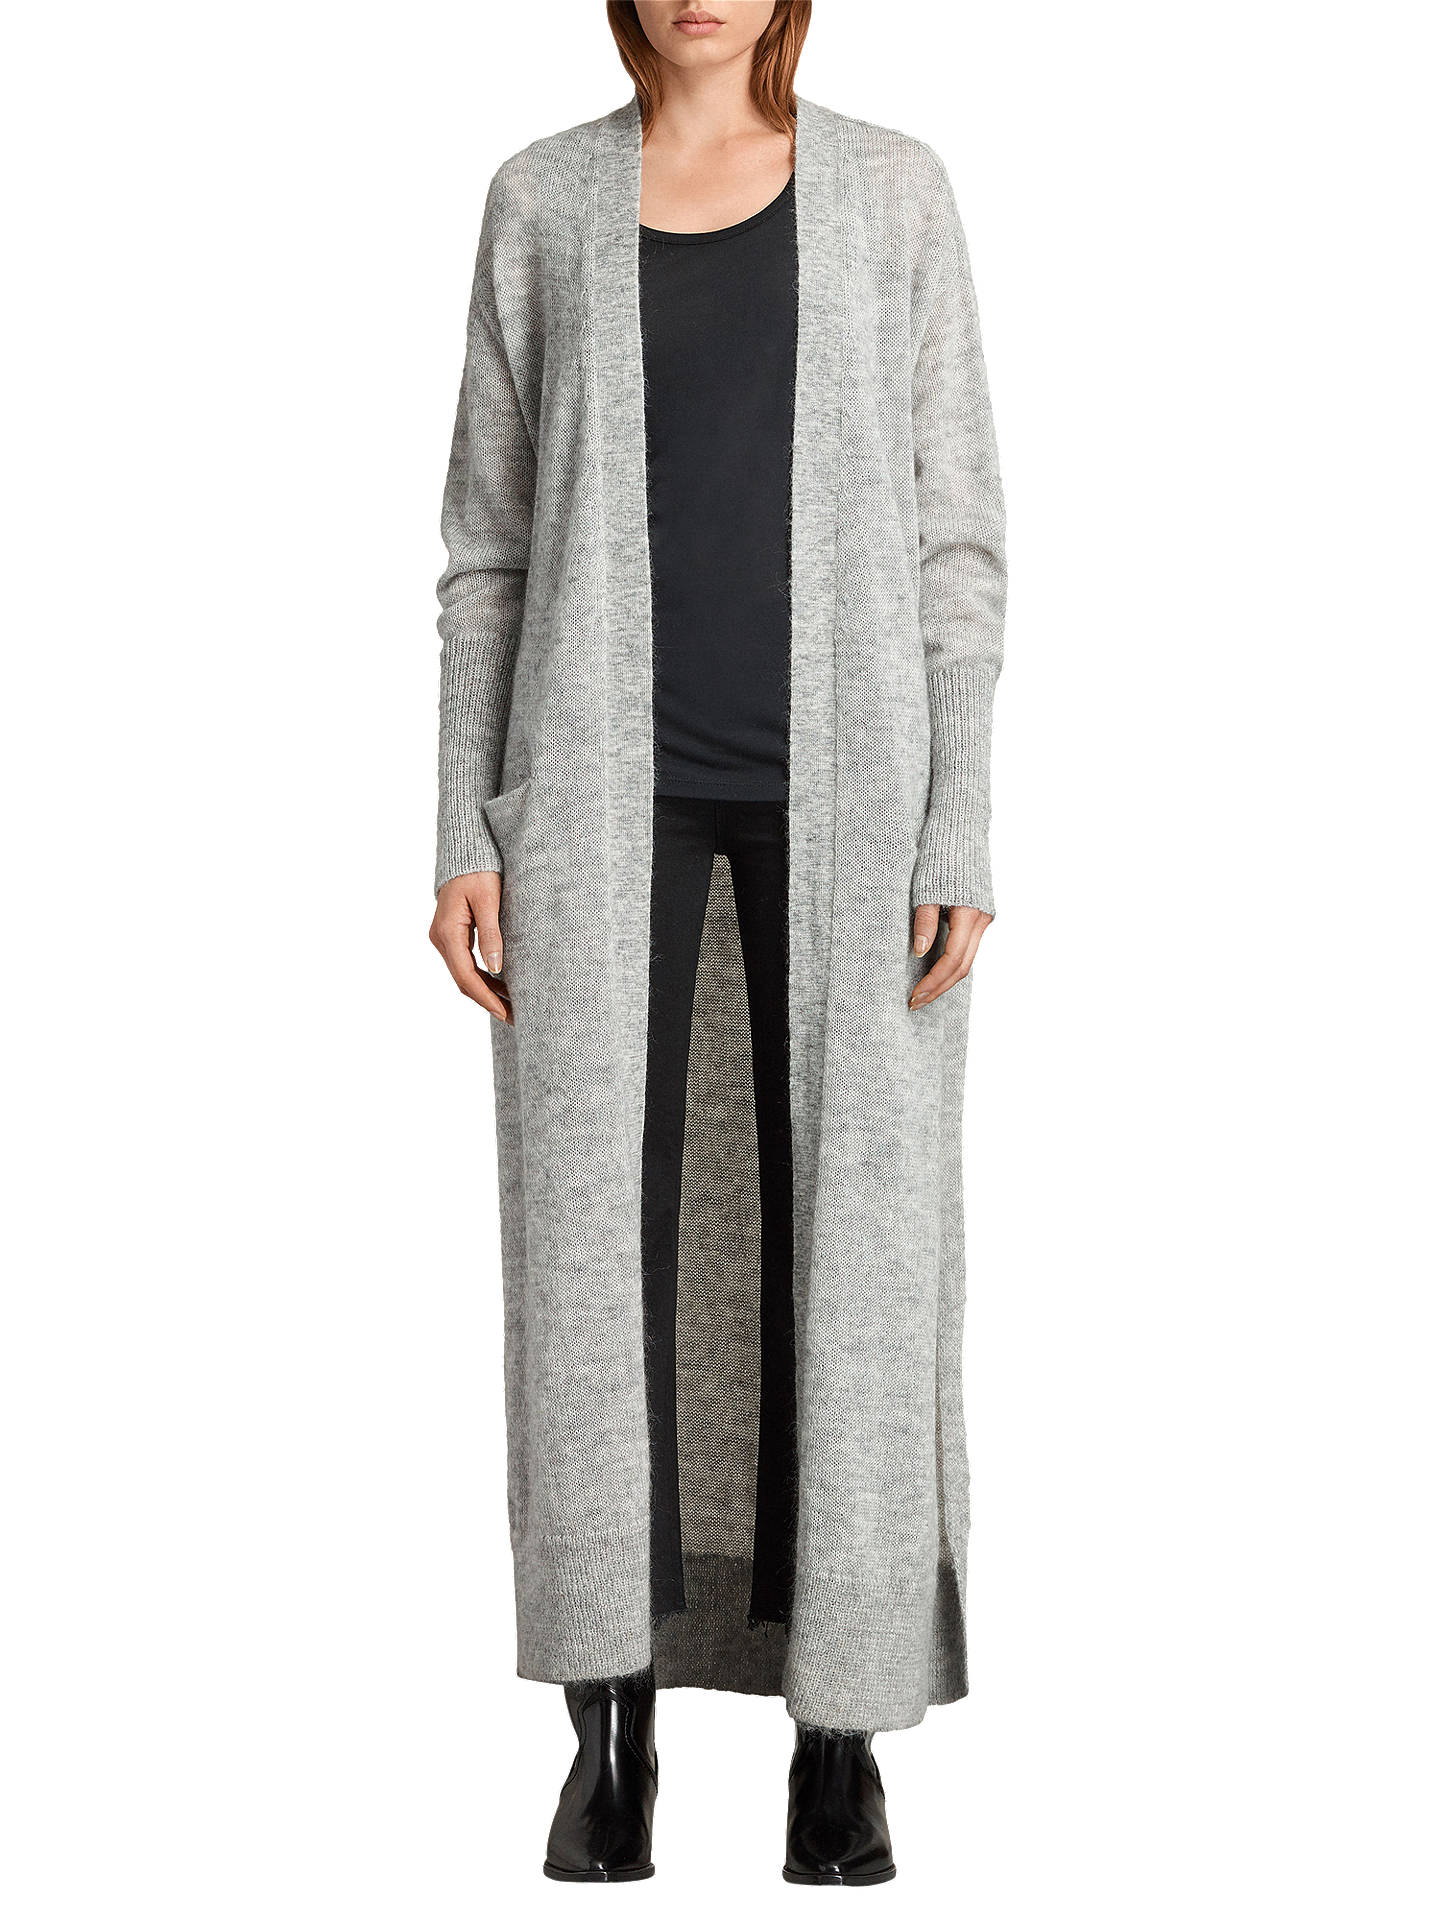 BuyAllSaints Maia Long Cardigan 11fd261a0